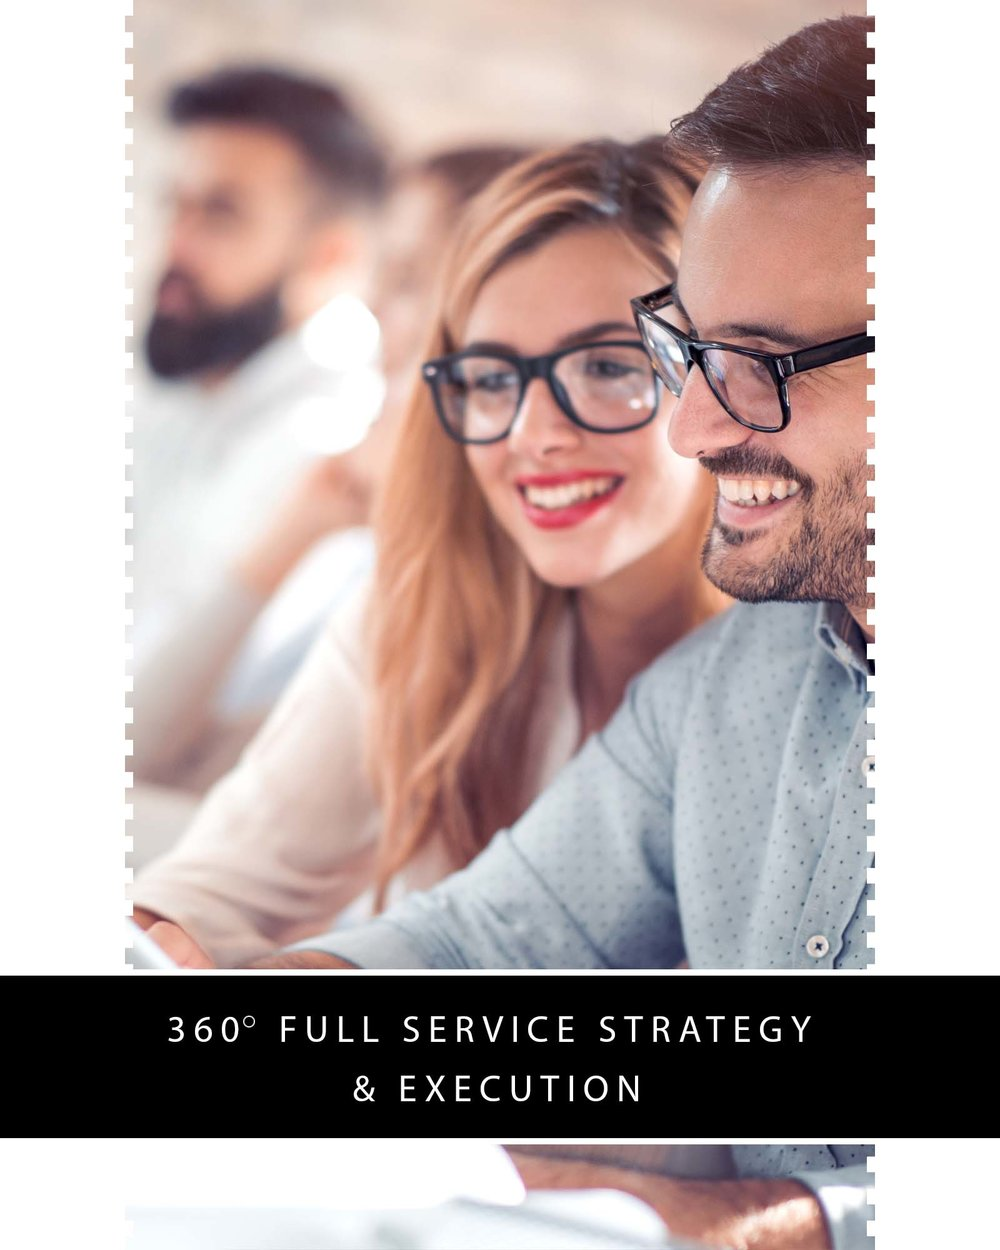 full service marketing and brand strategy 360.jpg